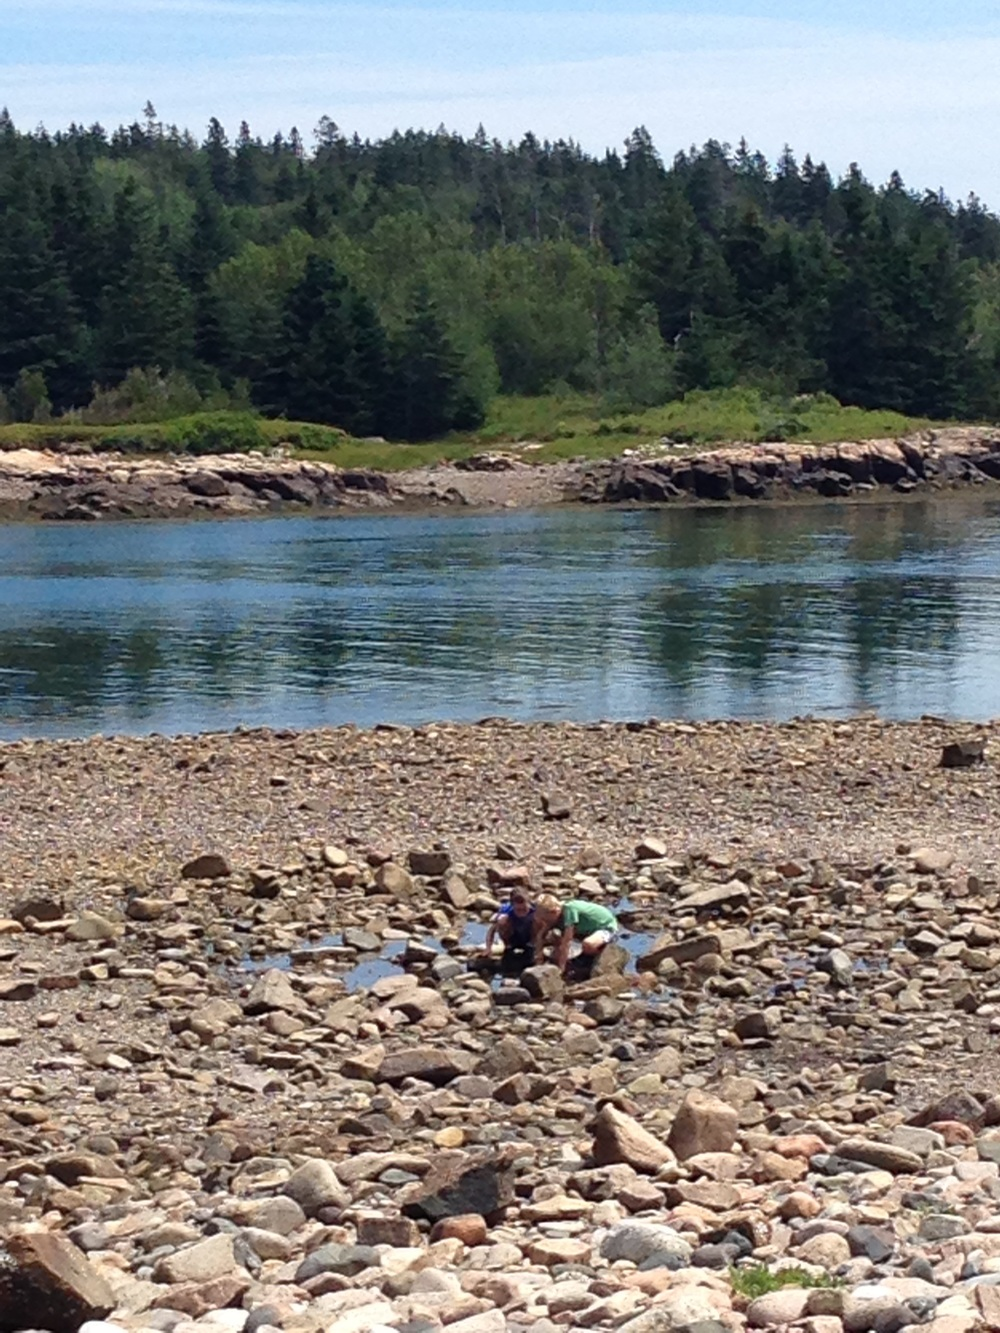 Frazer Point is one of the few places where it's safe to approach the water, here a few kids explore a tide pool at low tide.